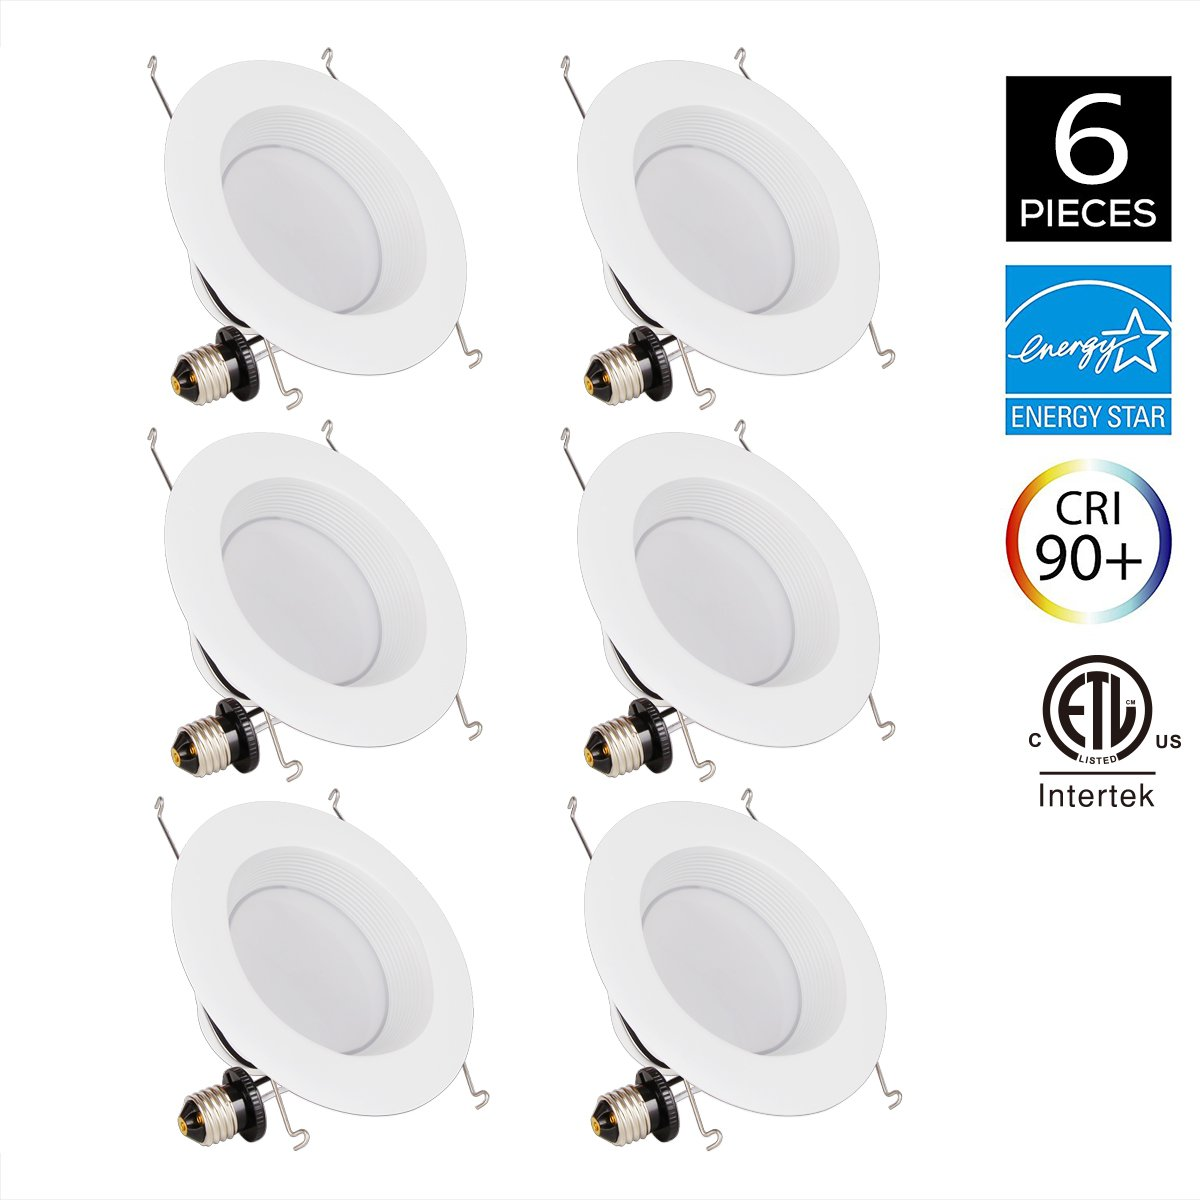 JJC 6Pack Recessed Lighting 6 Inch LED Dimmable Downlight Ceiling Lights 18W 3000K-Warm White 1260LM CRI 90 Energy Star Certified&ETL-Listed